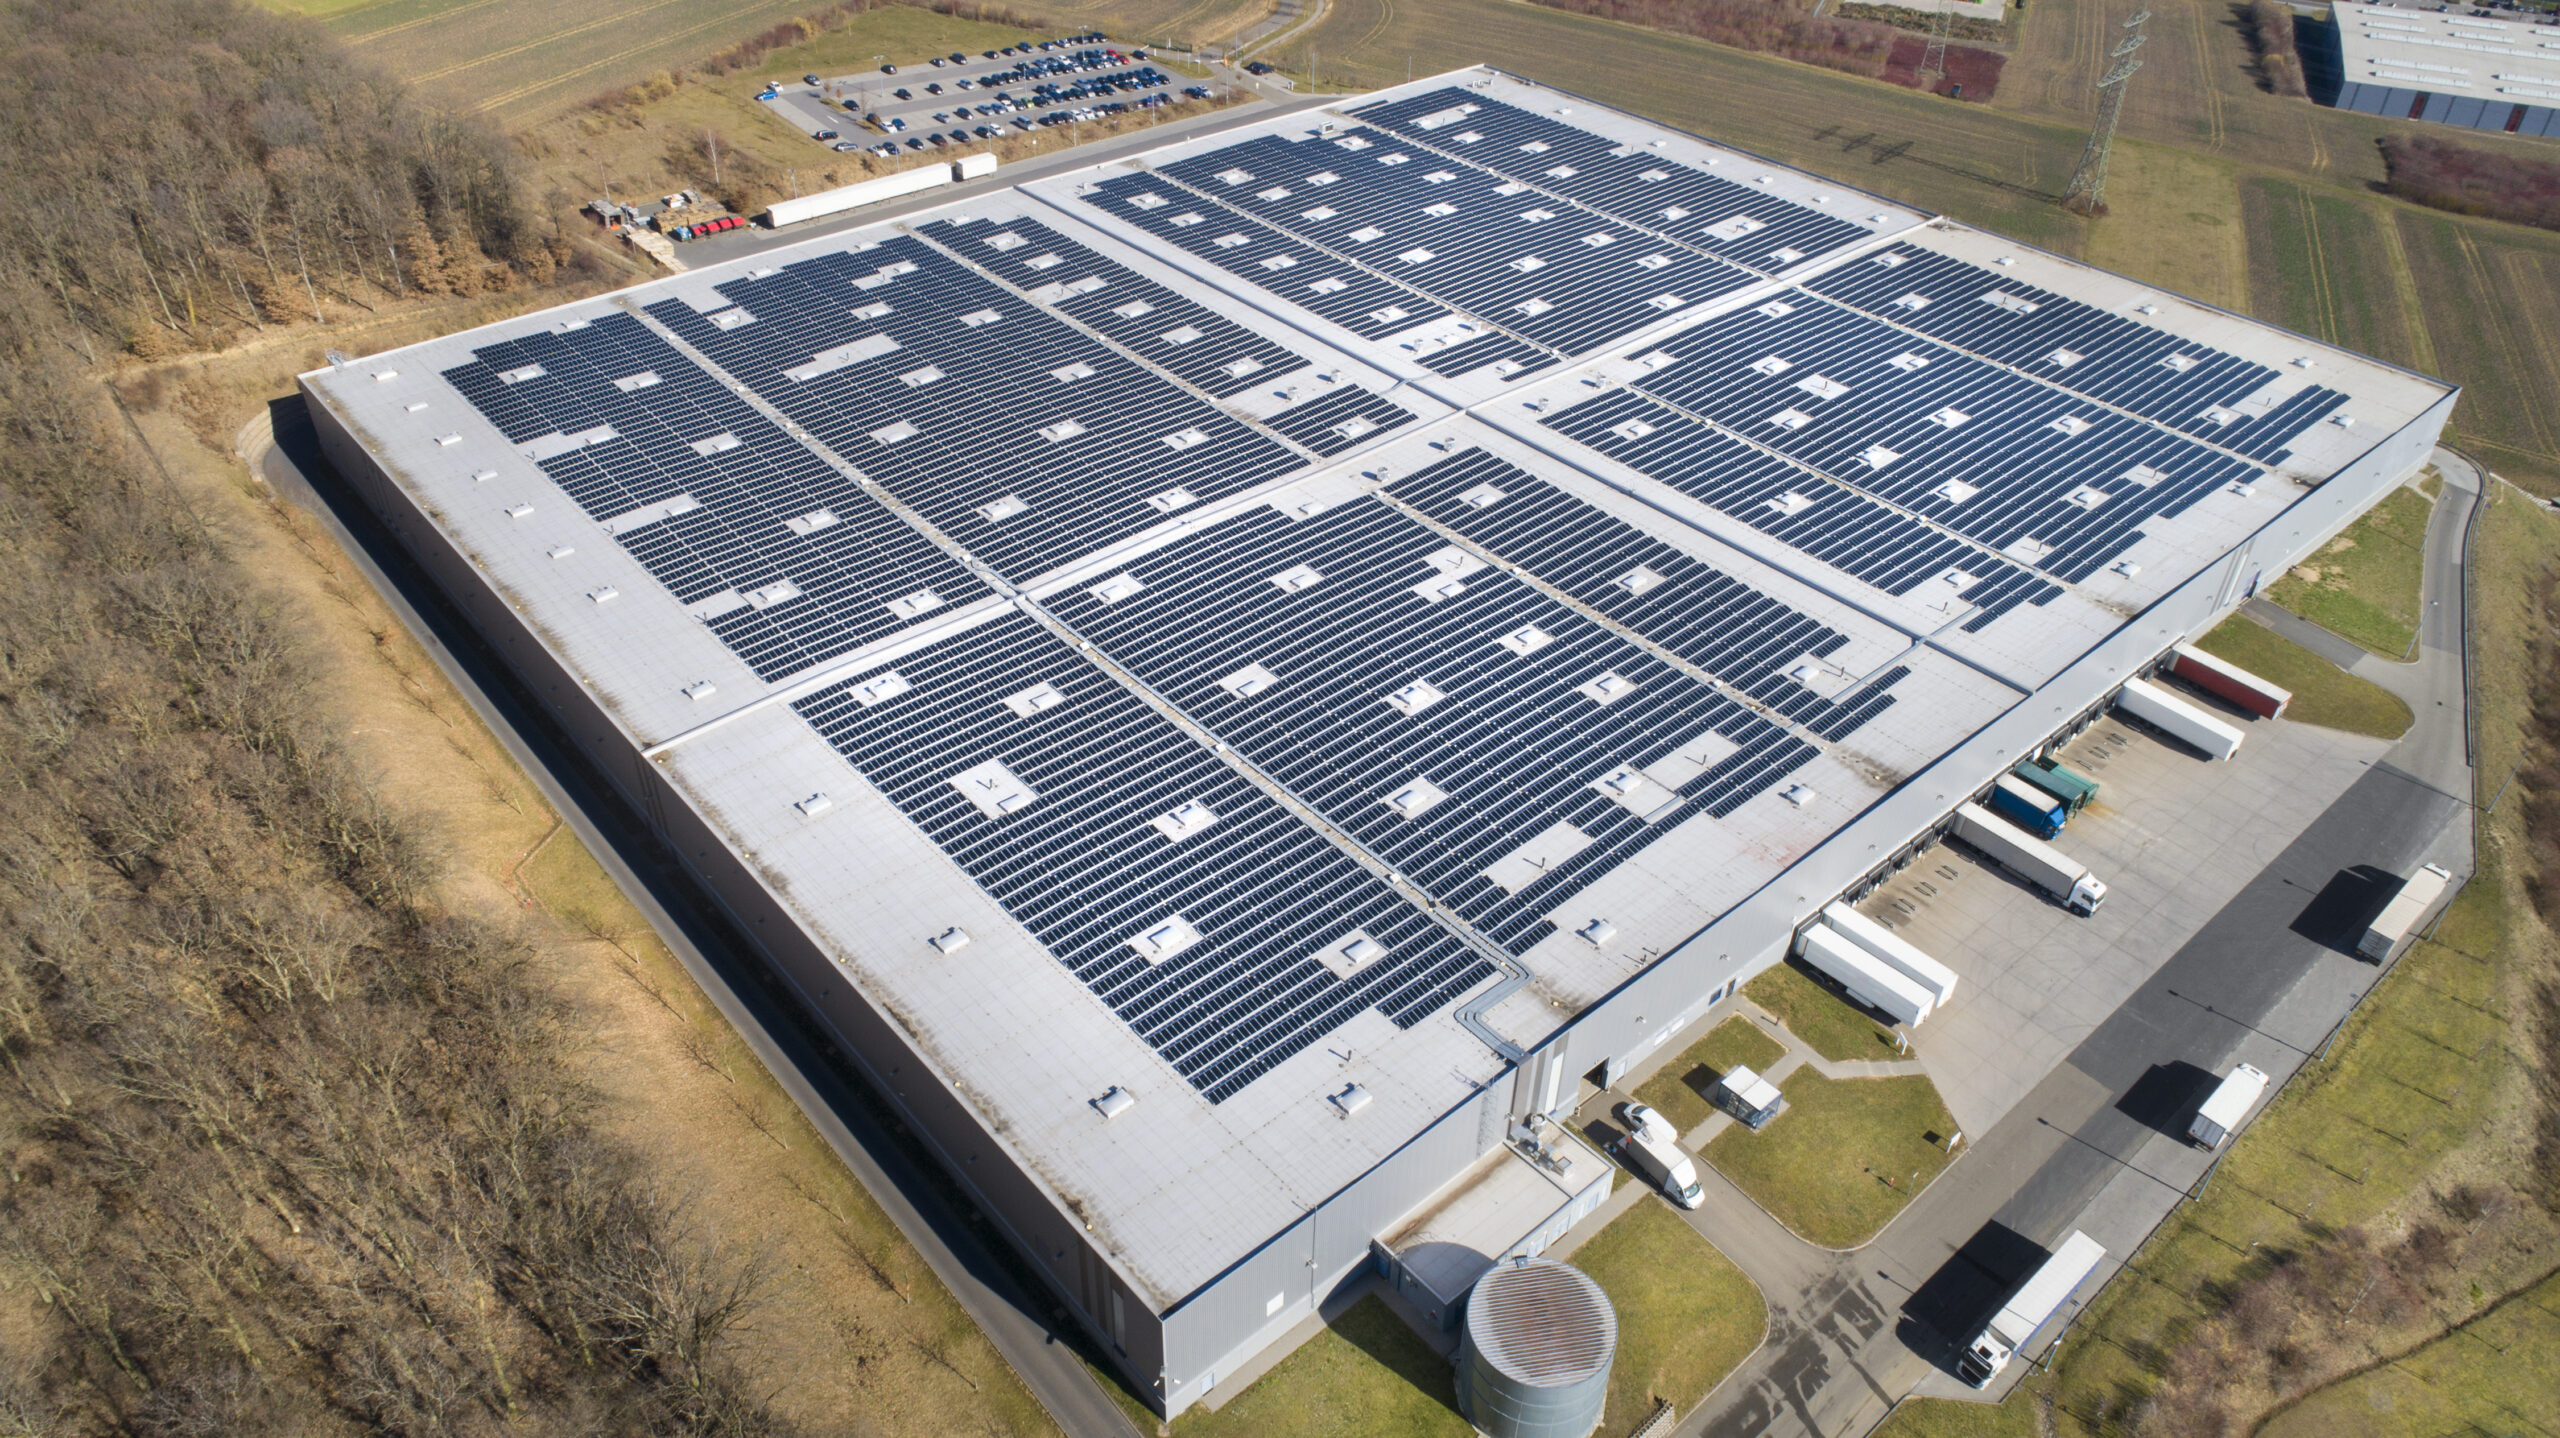 Install solar panels on commercial buildings